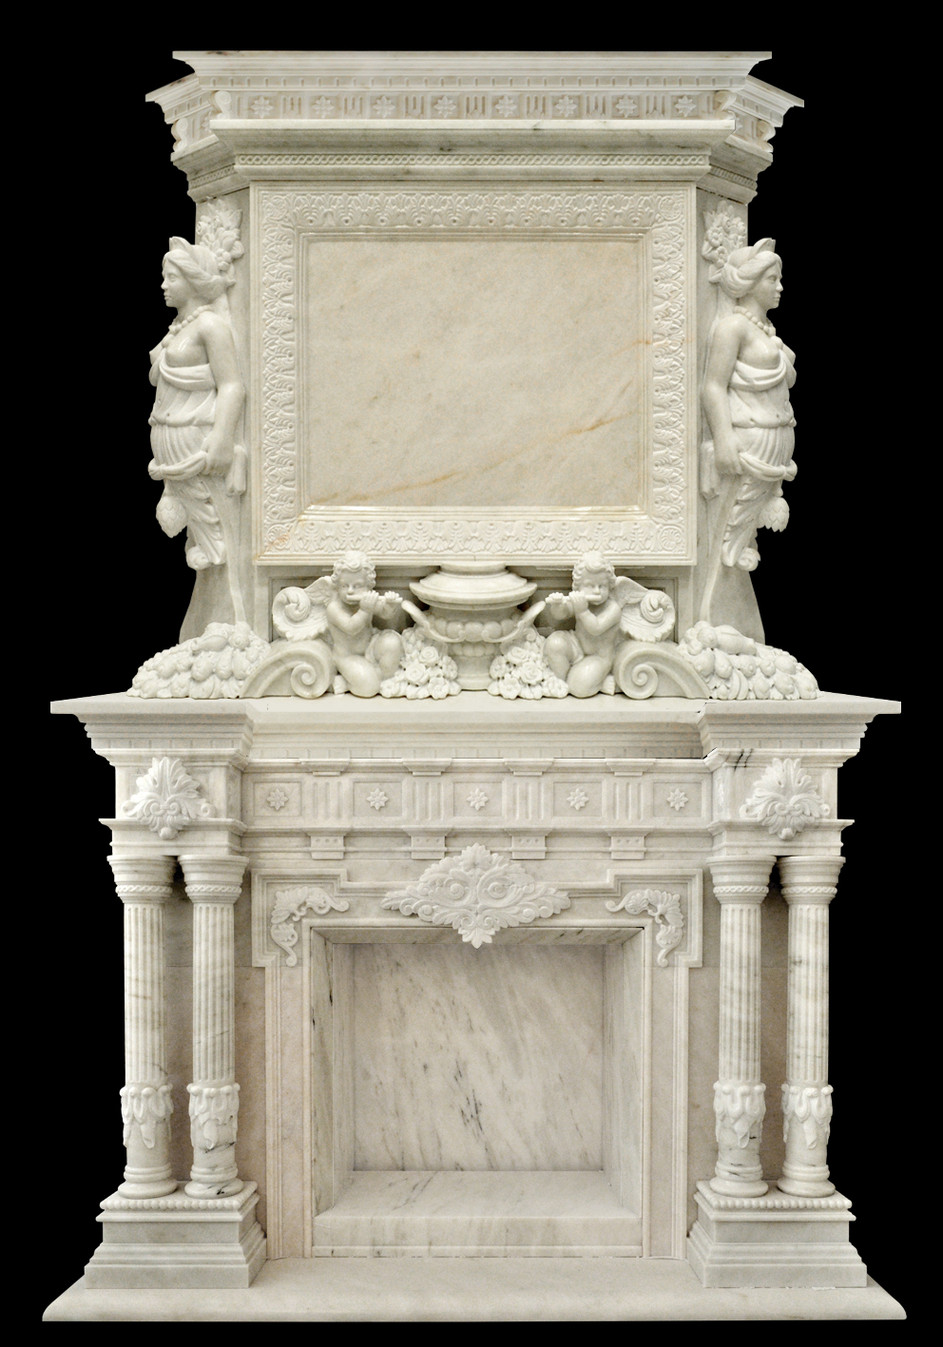 Monumental fireplace